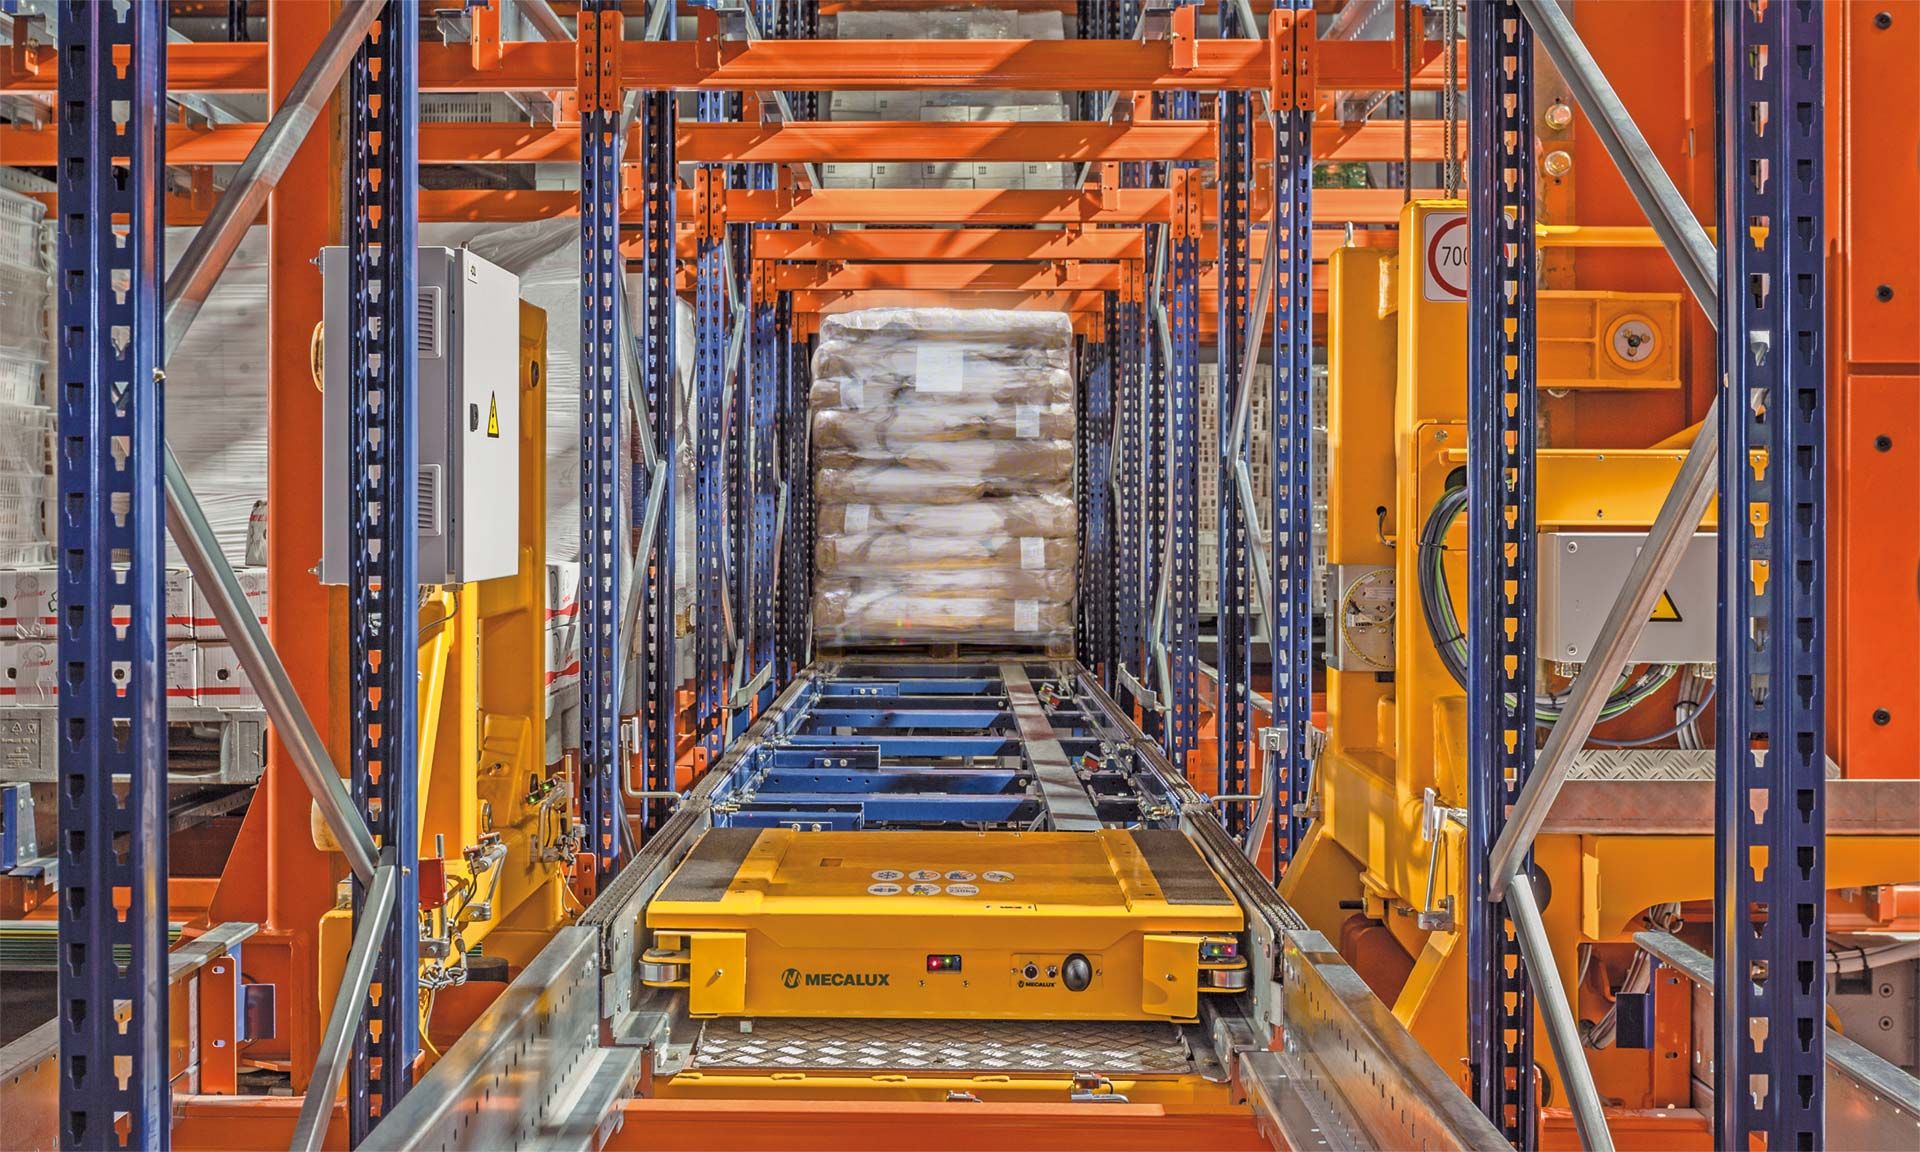 Automated storage facilitates extremely accurate stock control